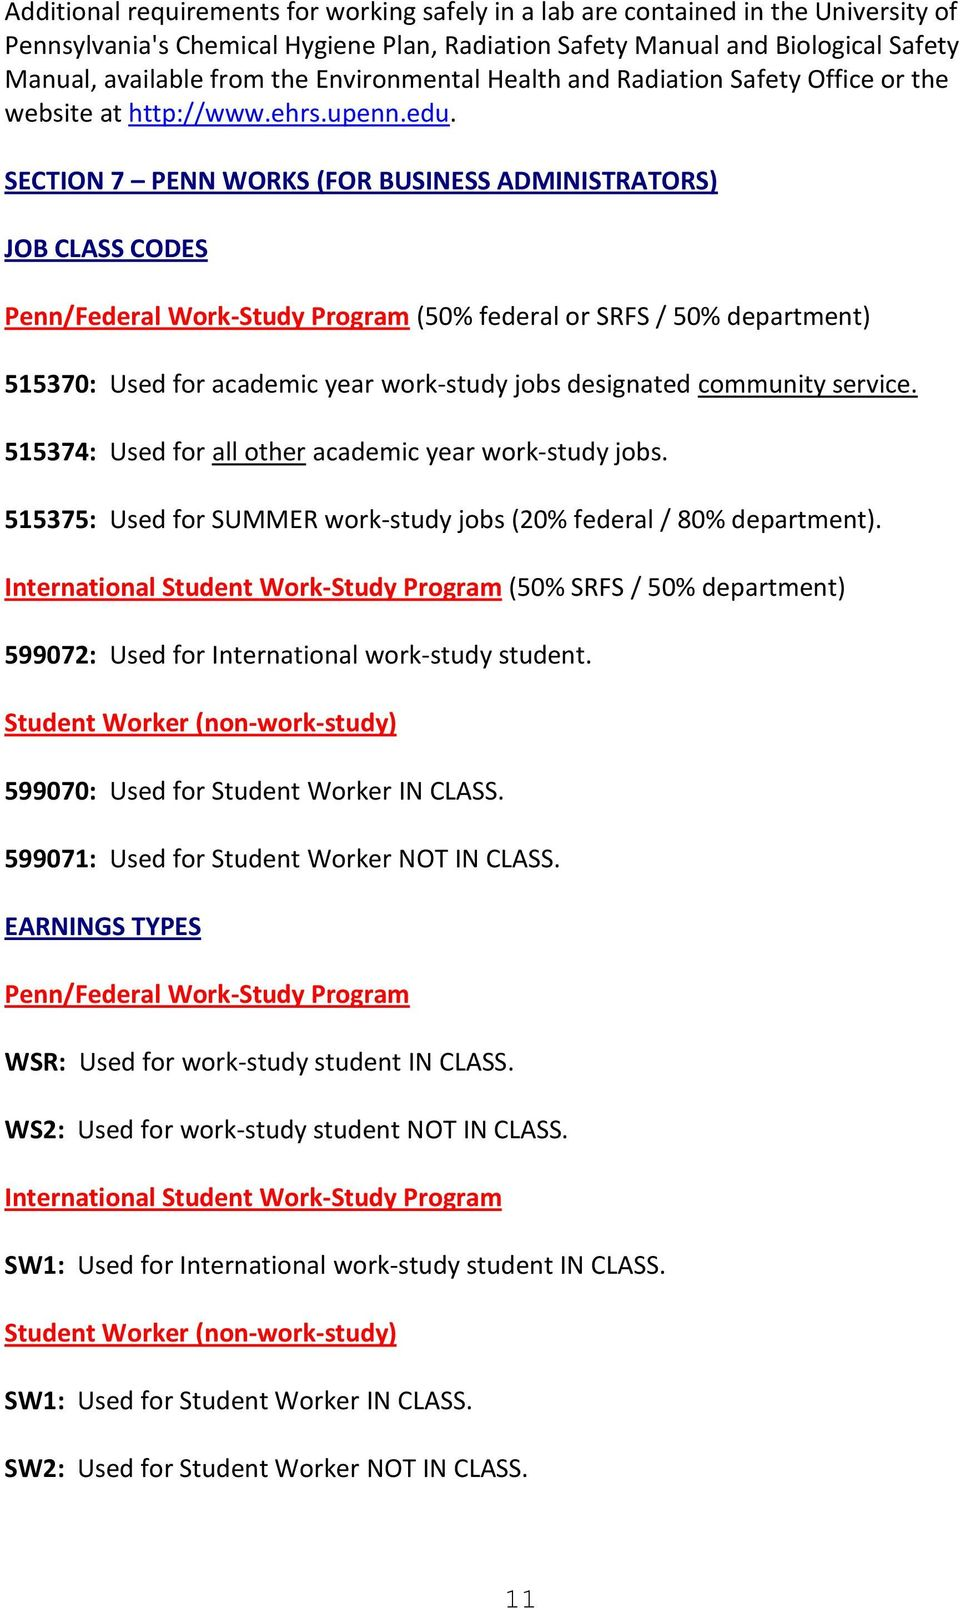 SECTION 7 PENN WORKS (FOR BUSINESS ADMINISTRATORS) JOB CLASS CODES Penn/Federal Work-Study Program (50% federal or SRFS / 50% department) 515370: Used for academic year work-study jobs designated